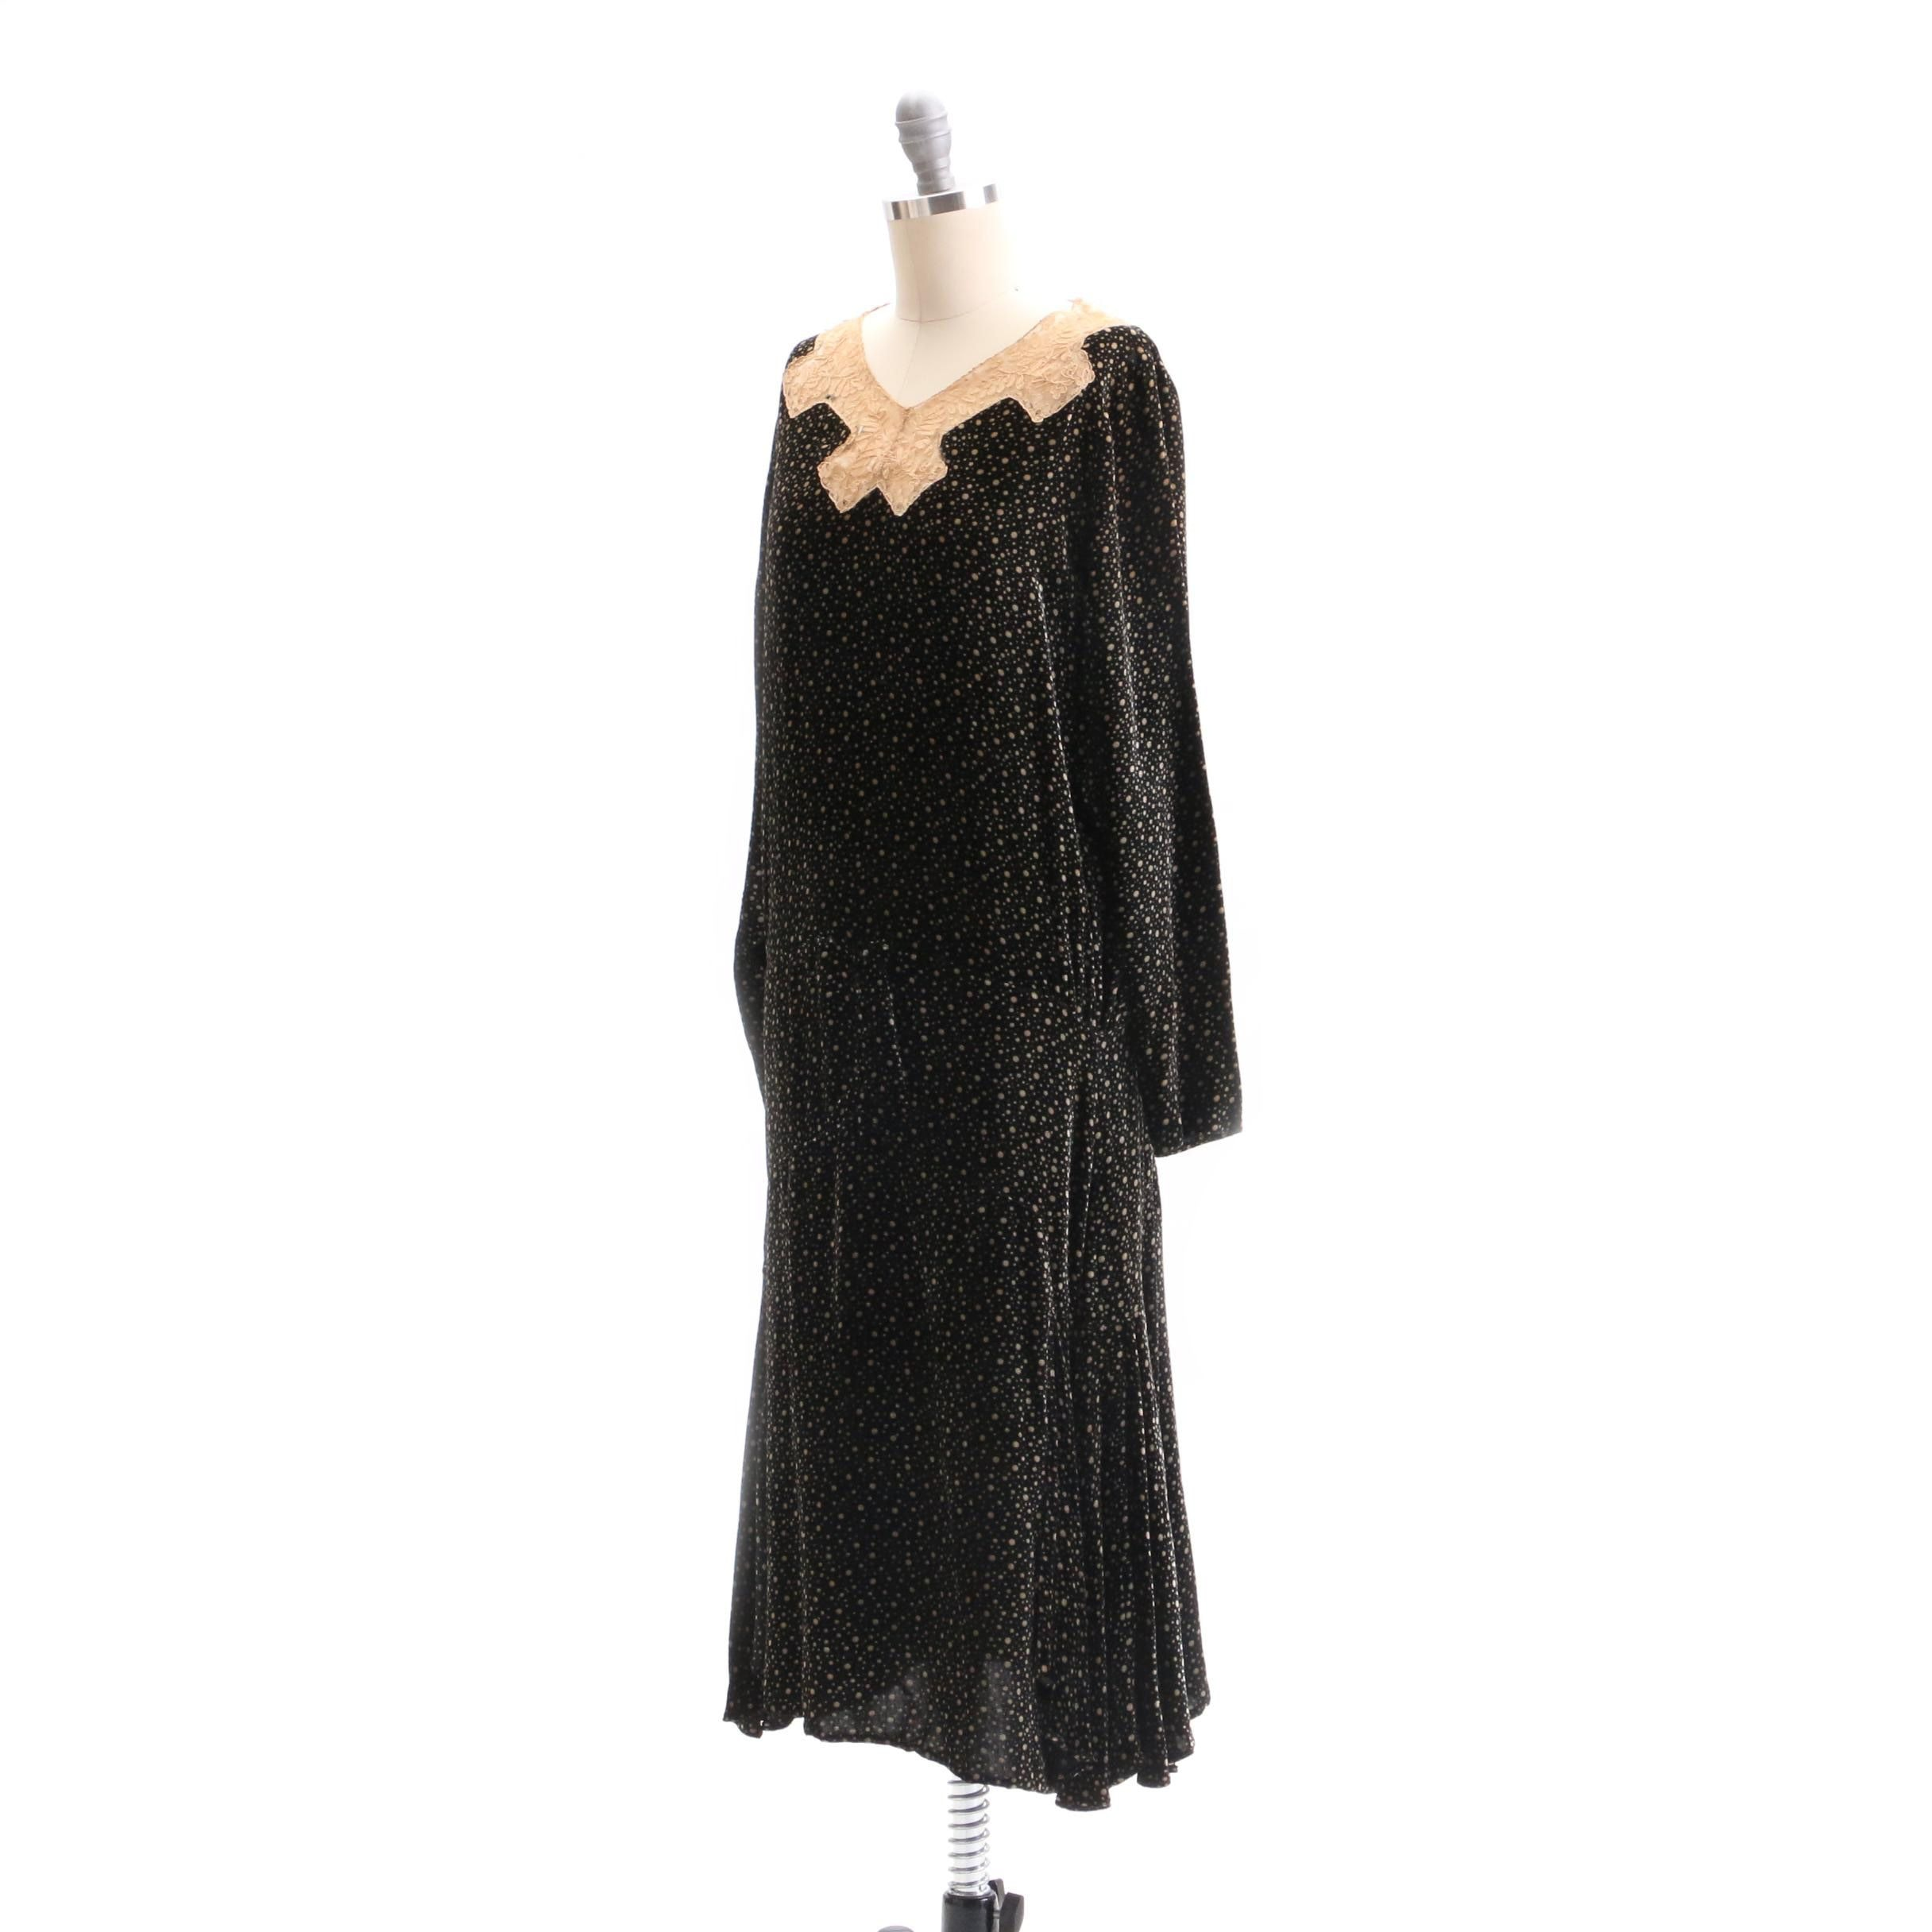 Circa 1920s Vintage Velveteen Dress with Slip